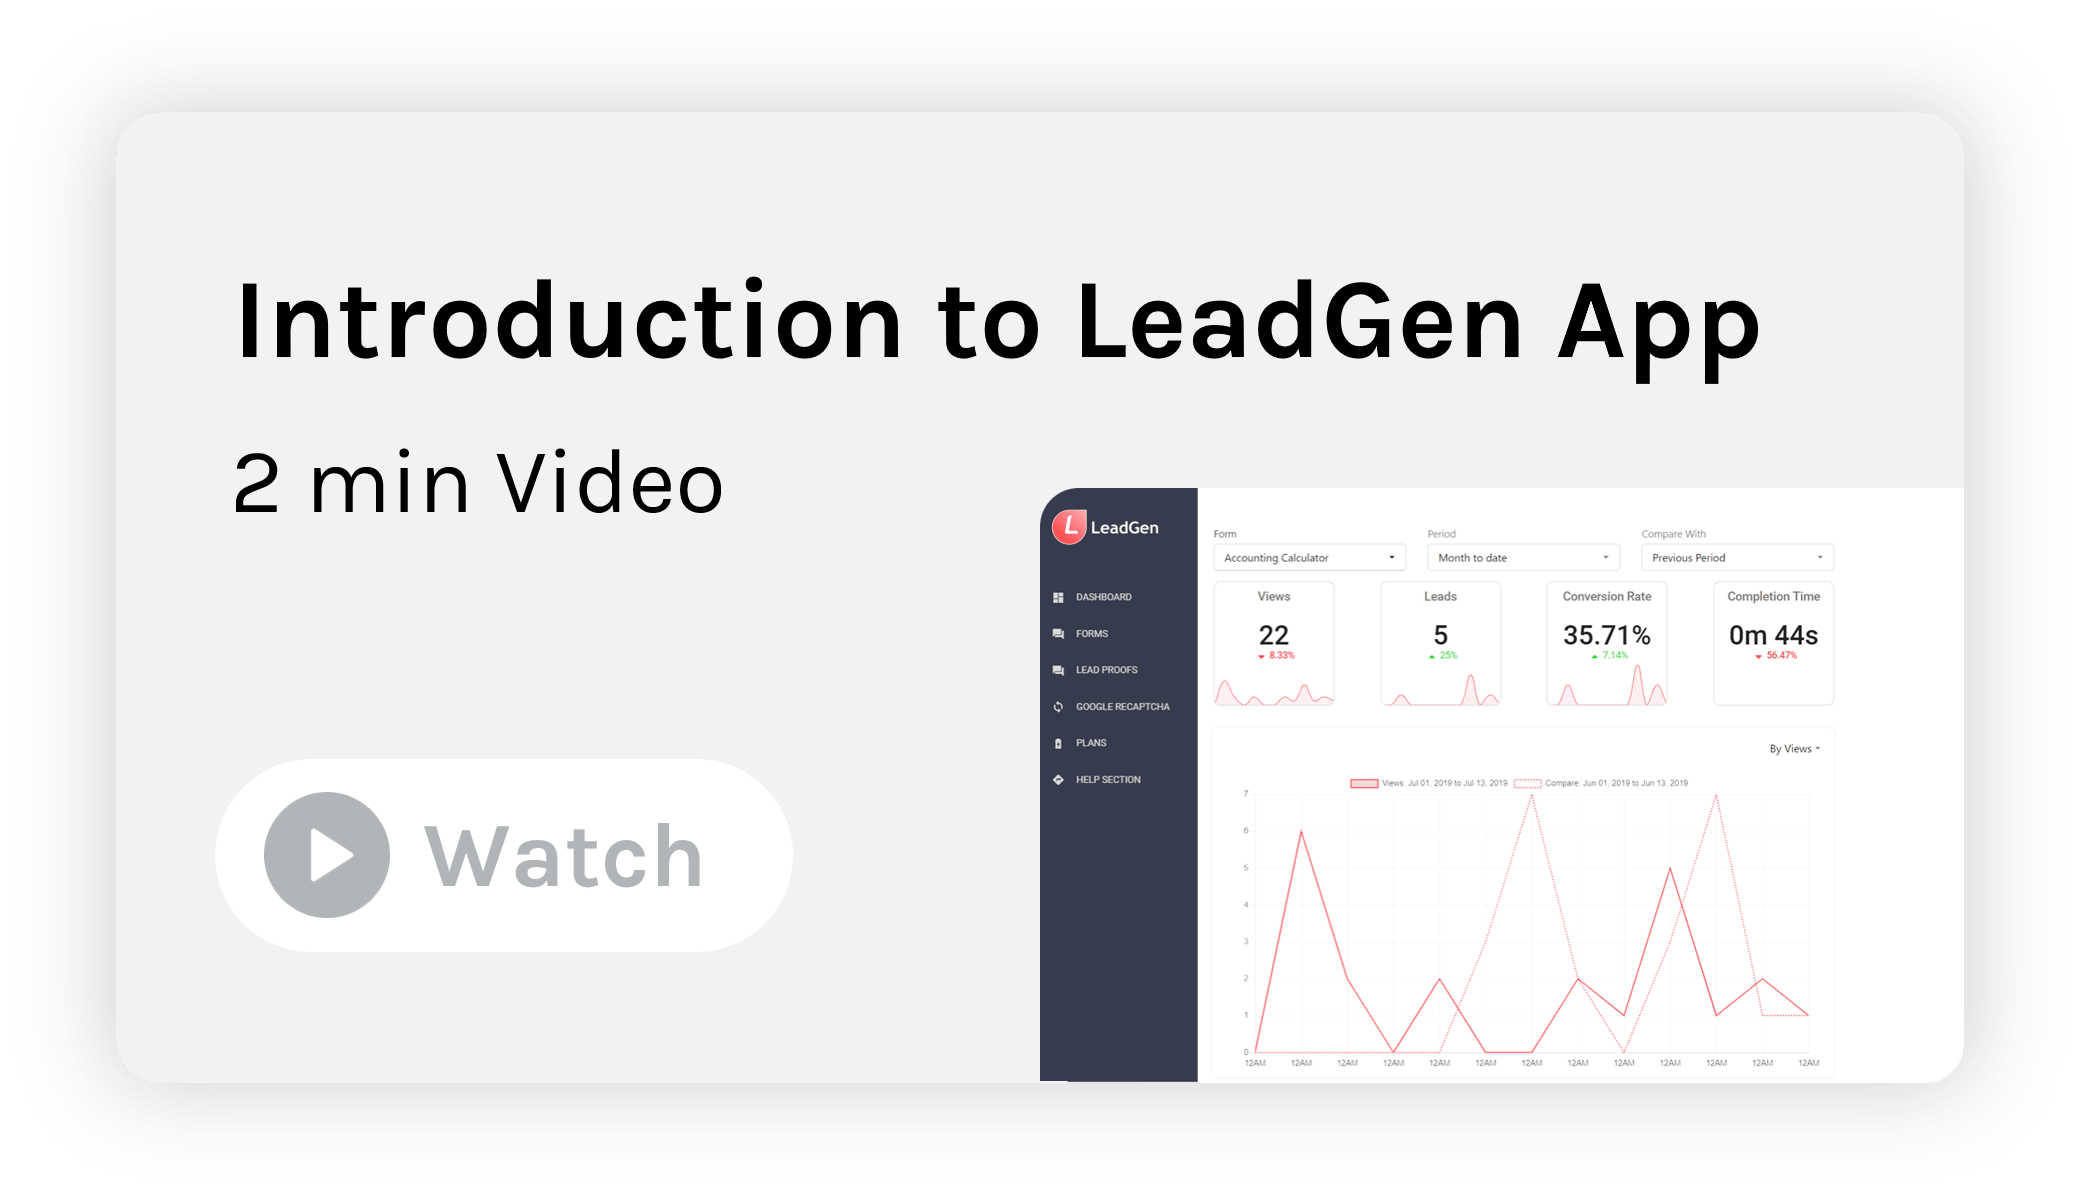 Introduction to LeadGen App